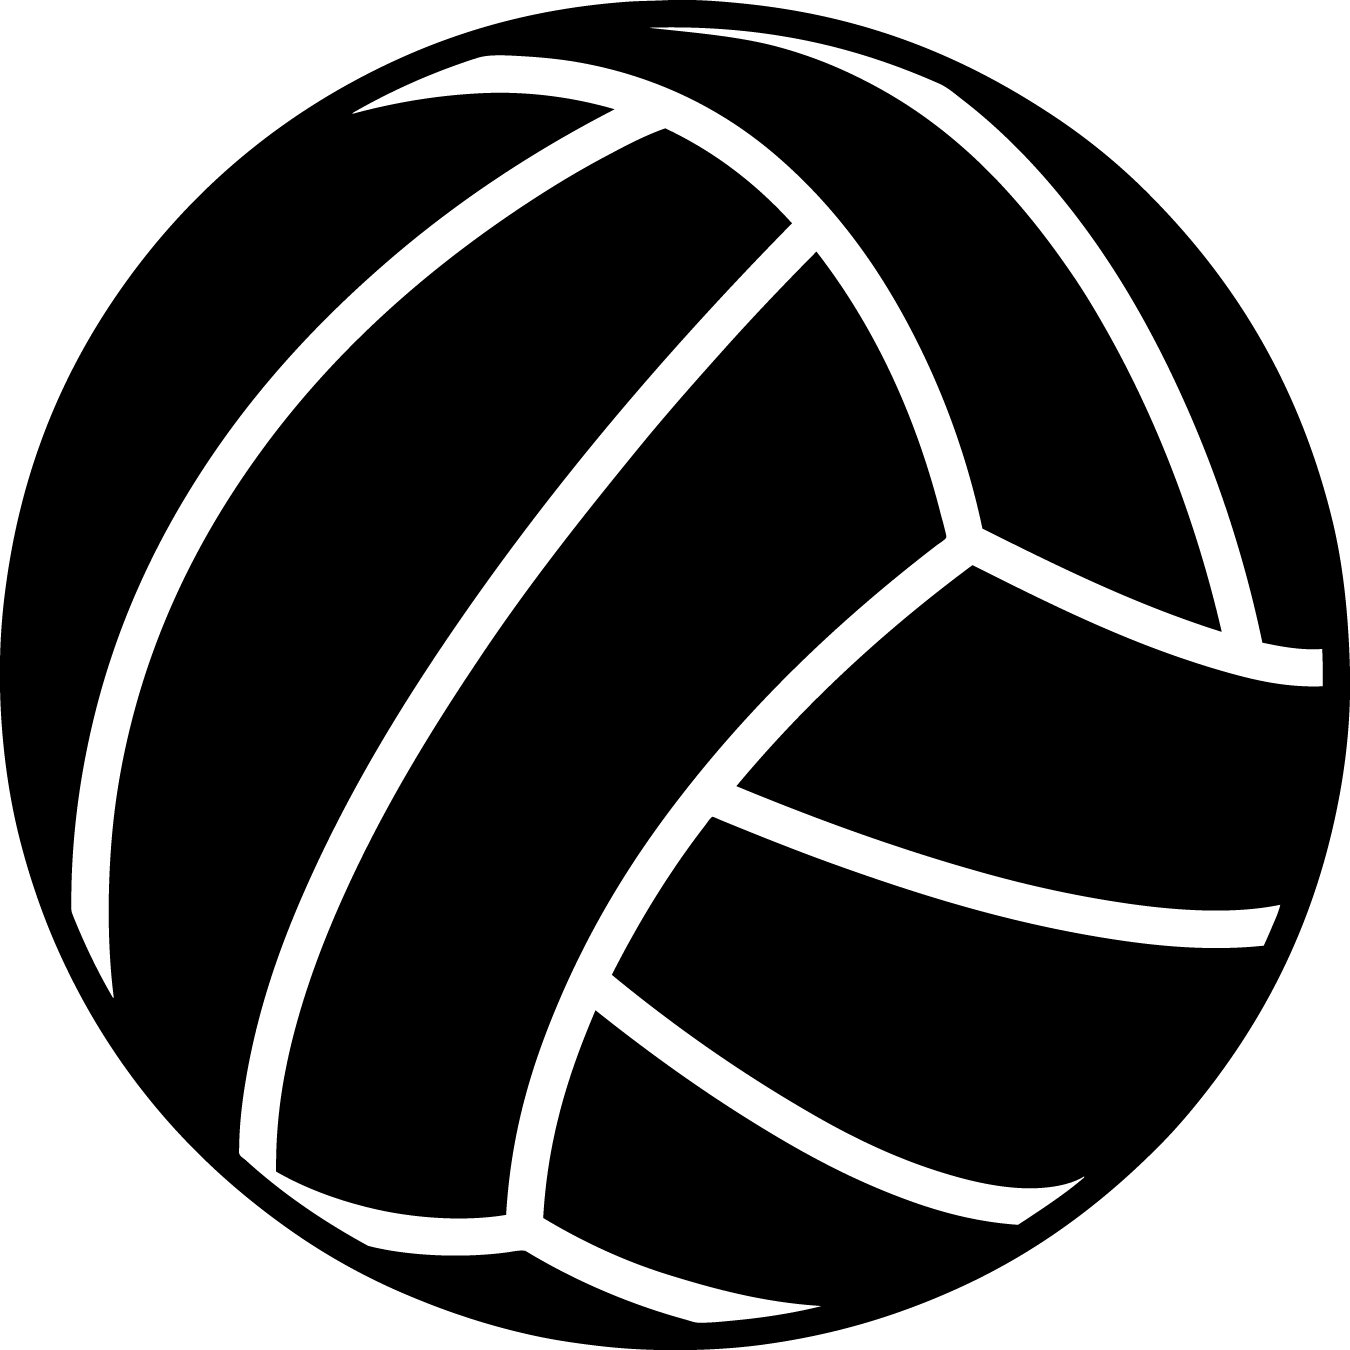 White volleyball black background clipart graphic library download Free volleyball clipart clipart images gallery for free ... graphic library download